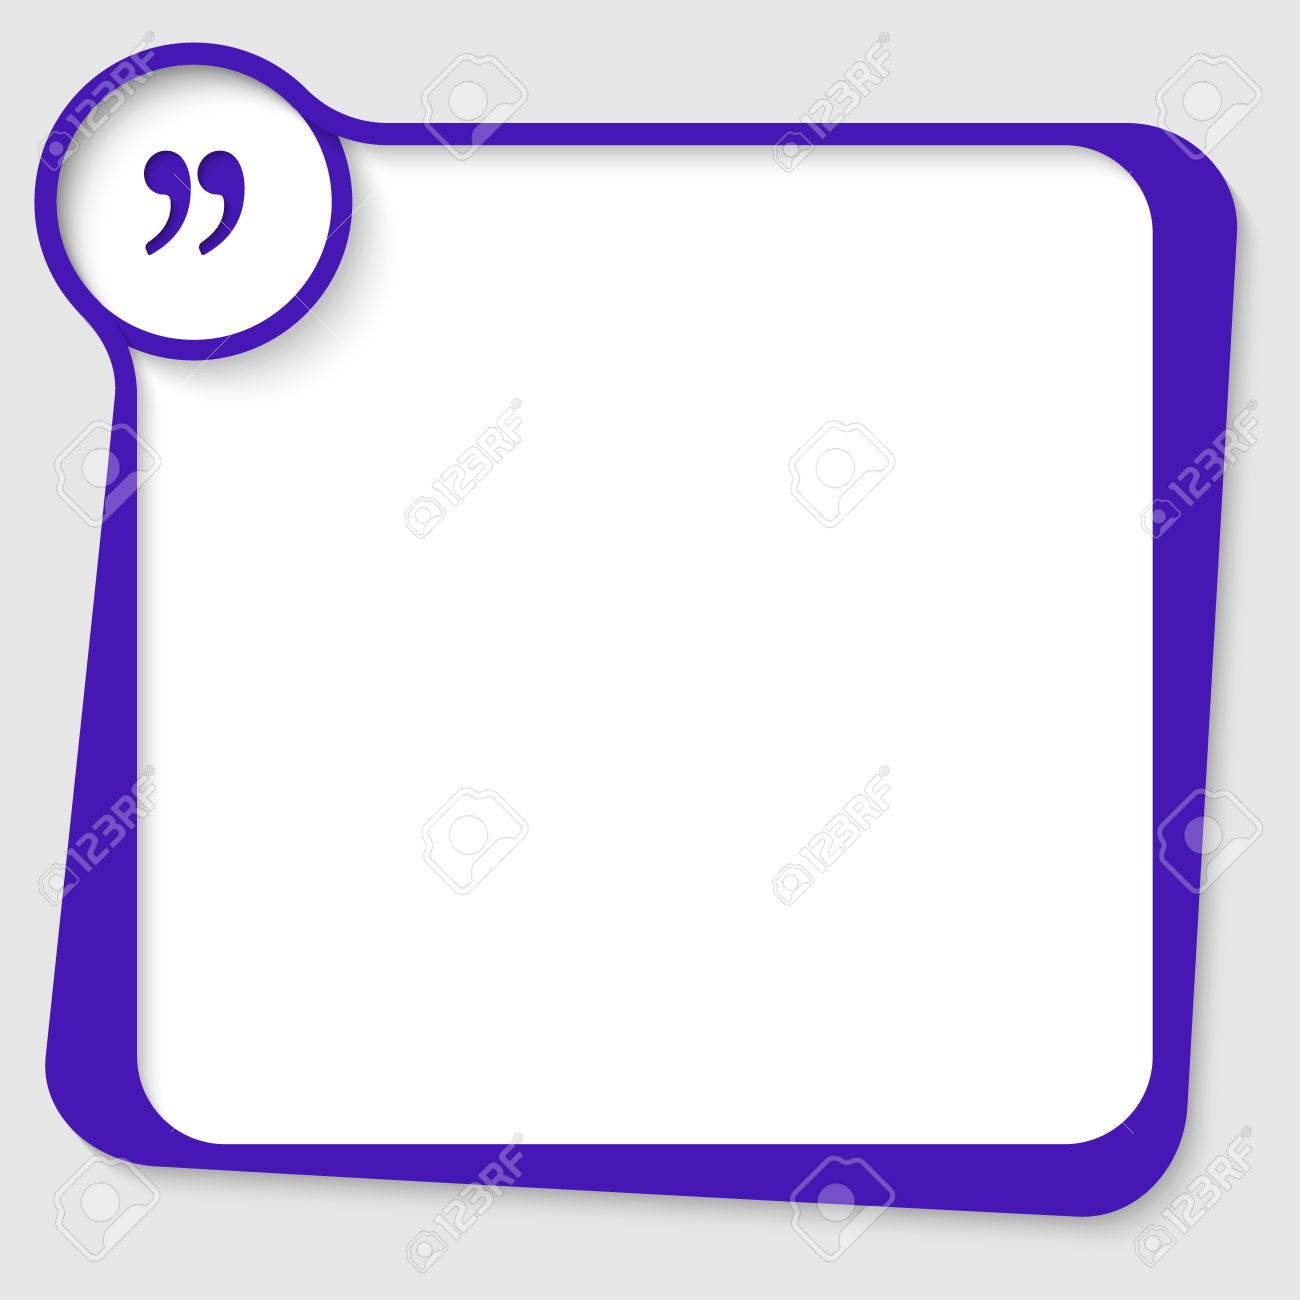 blue blank text box for any text with quotation mark royalty free